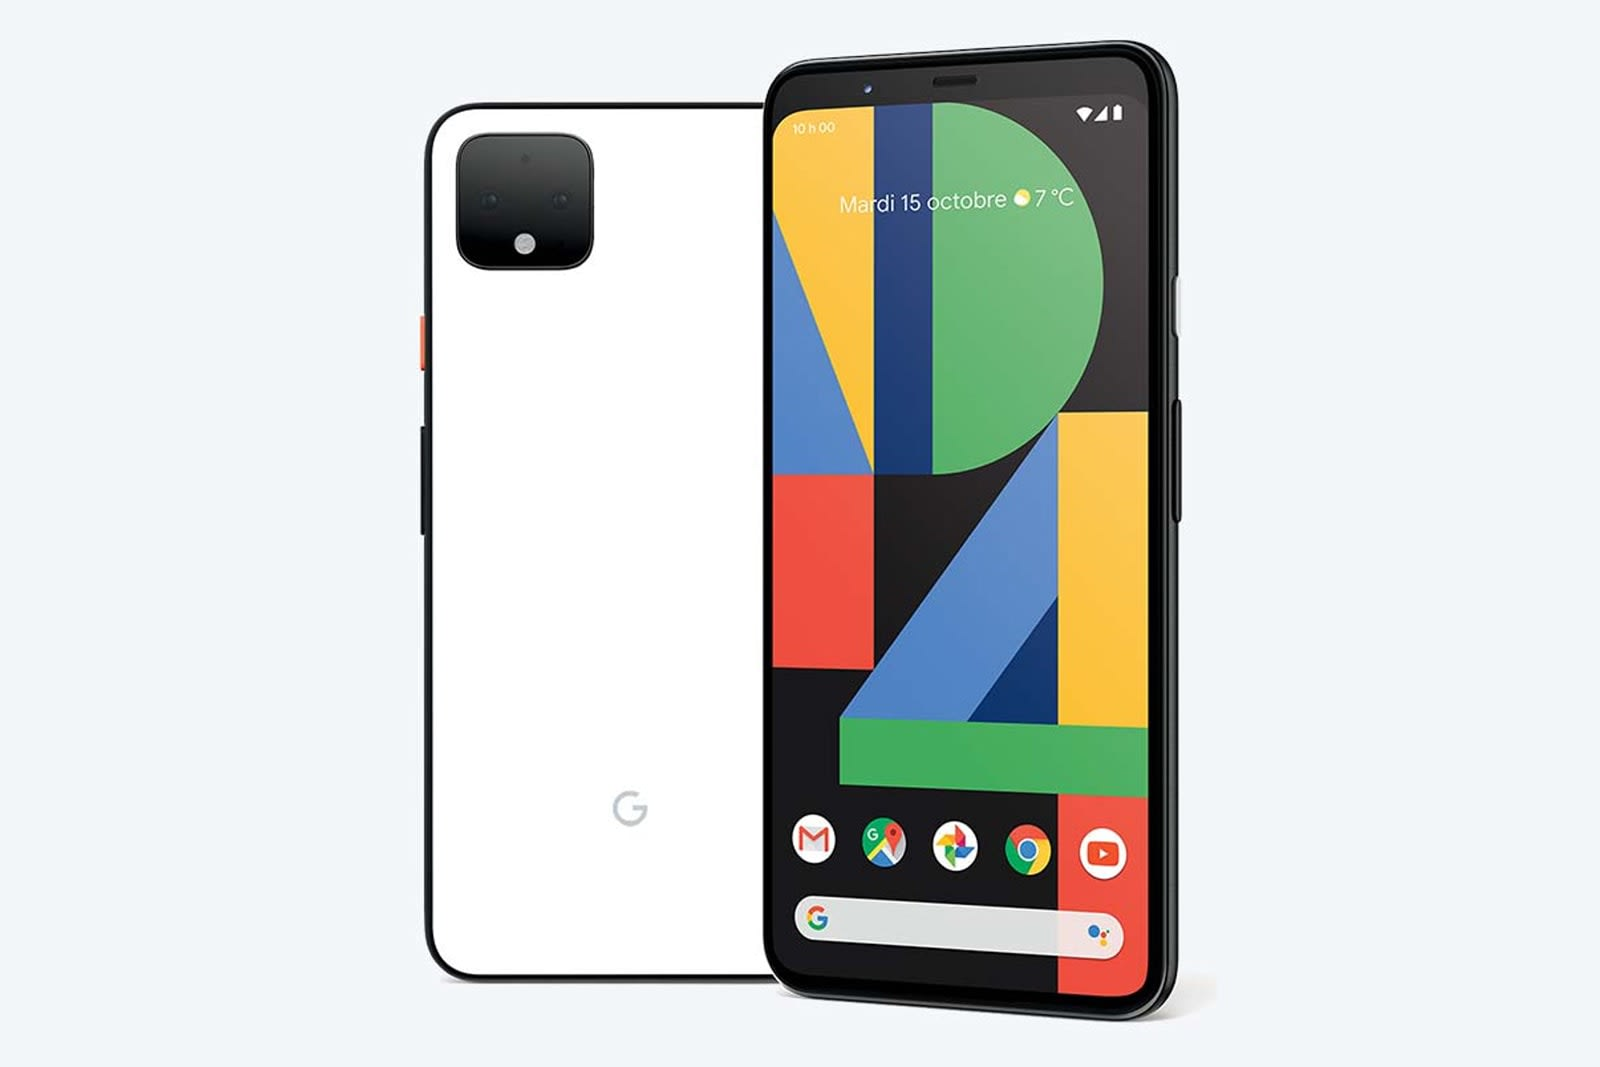 Pixel 4 pre-order at Best Buy Canada confirms key specs